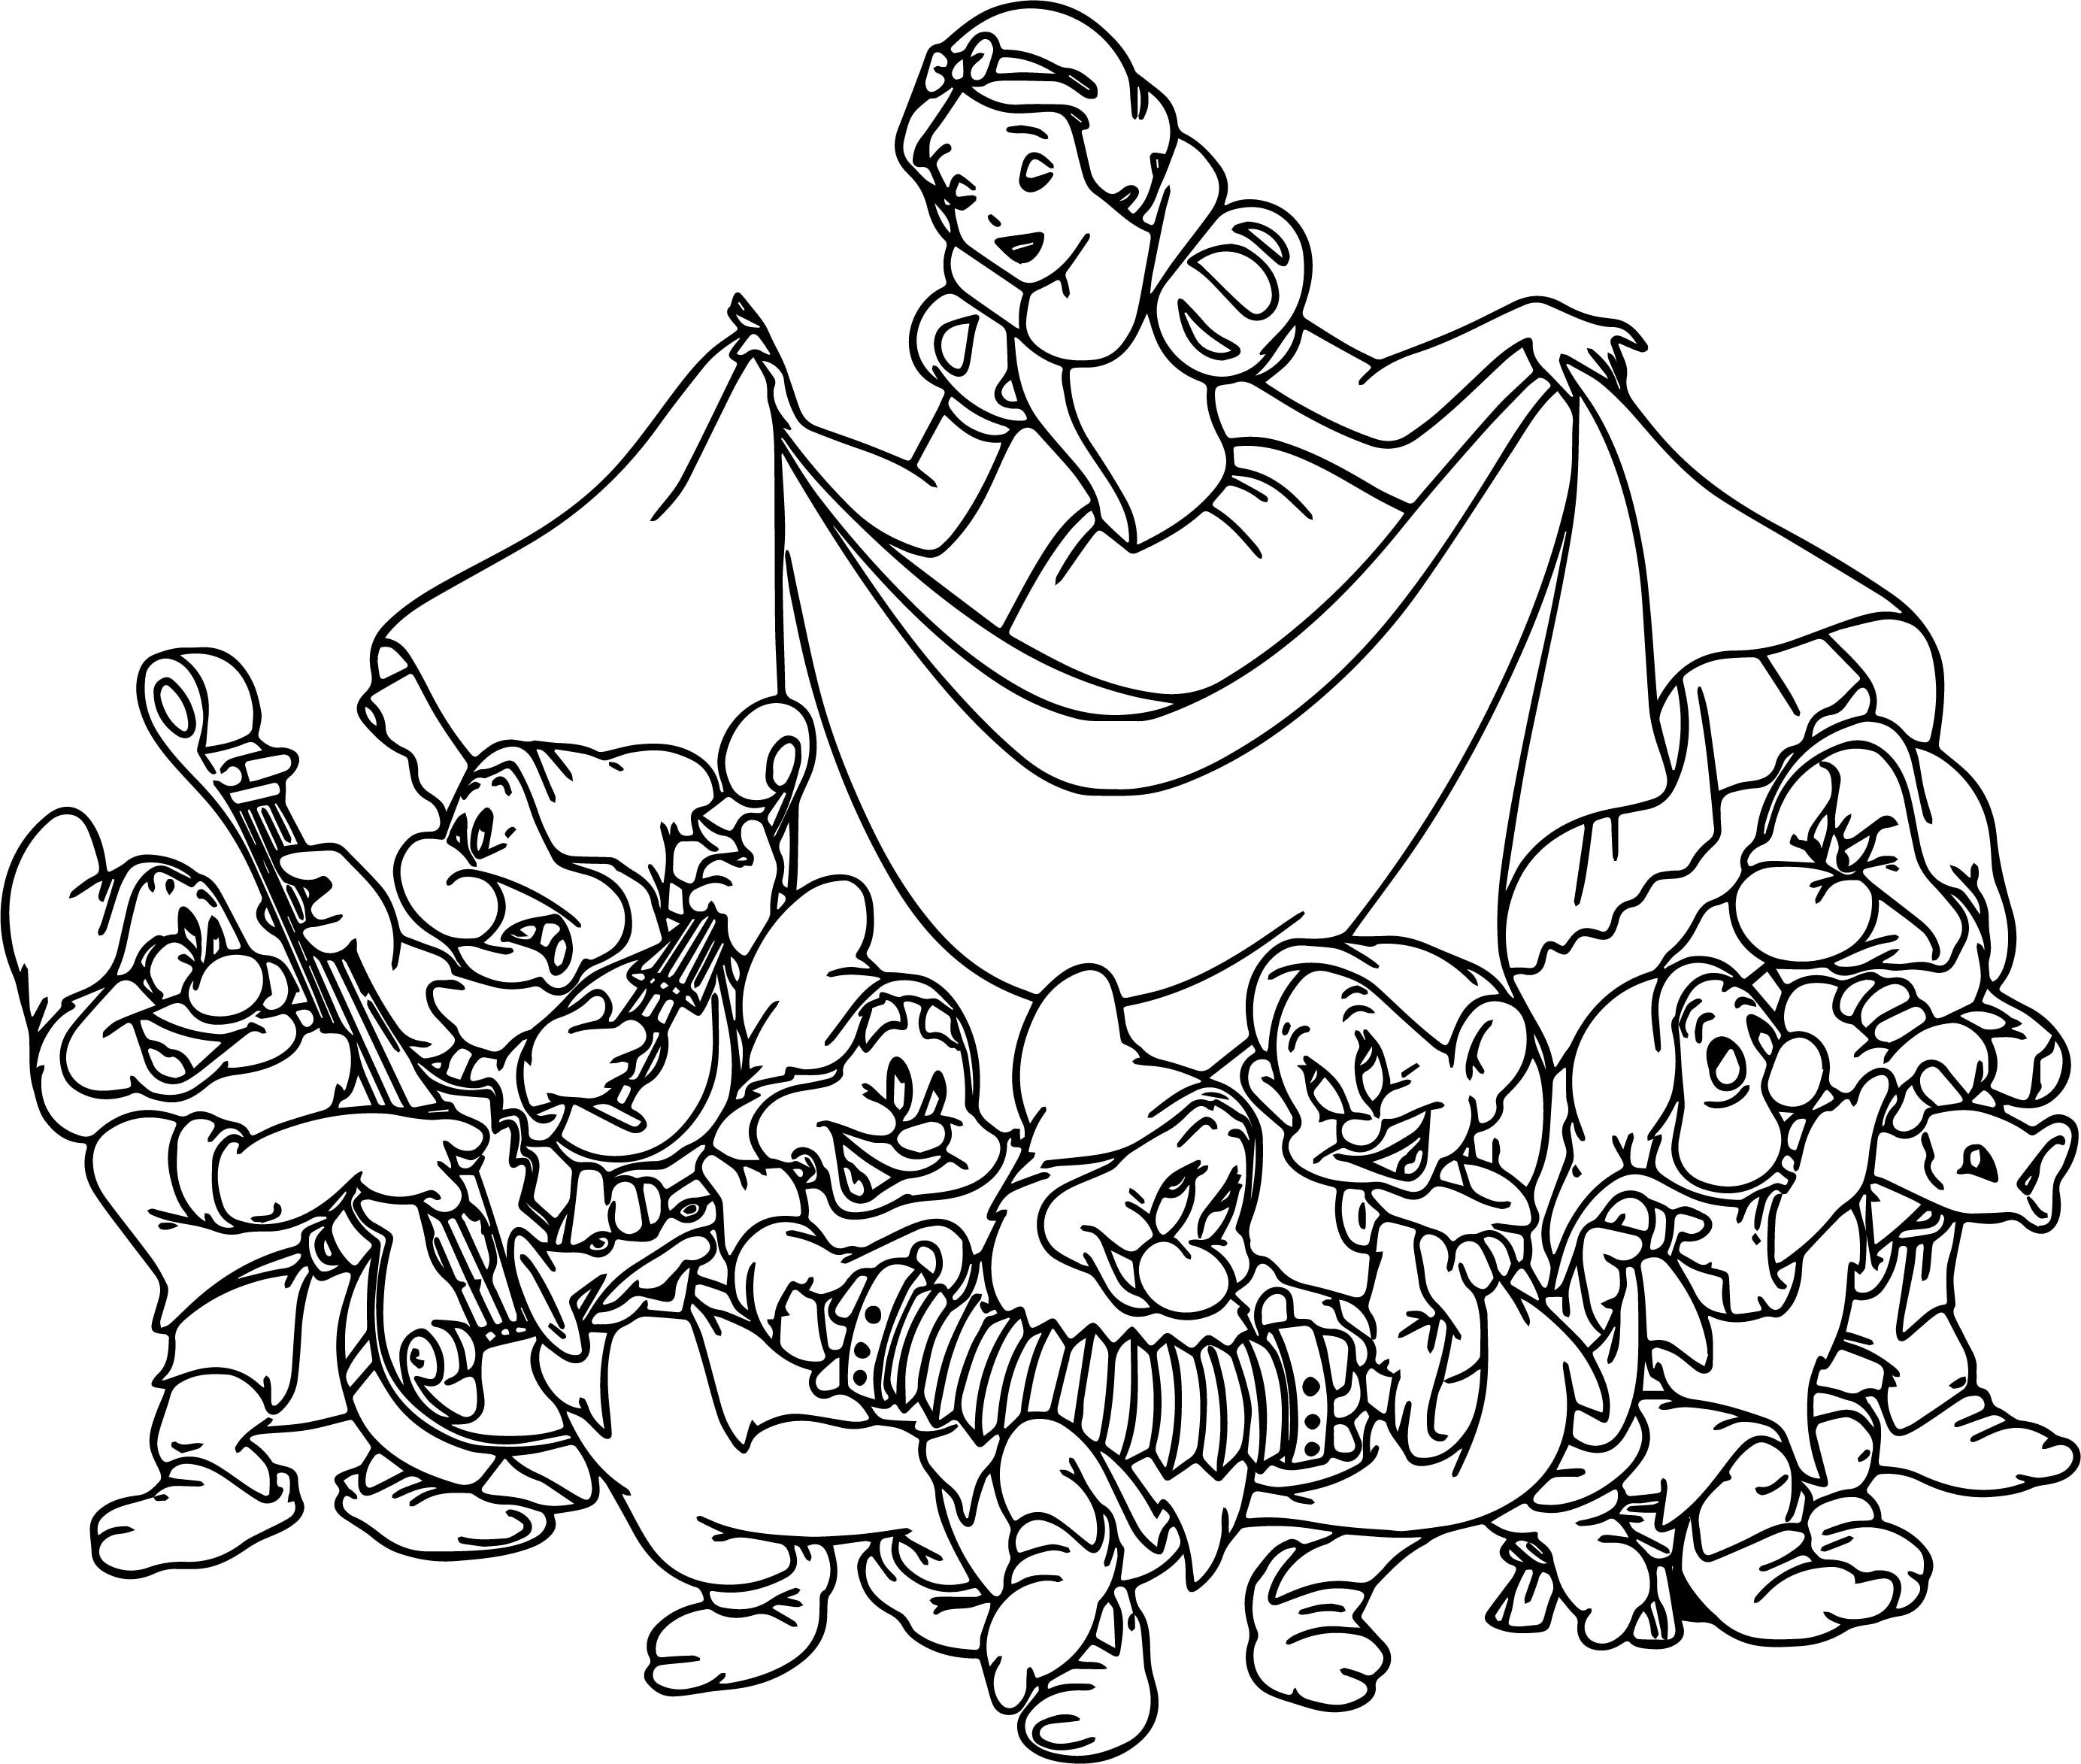 Snow White And The Seven Dwarfs Coloring Pages at GetDrawings com